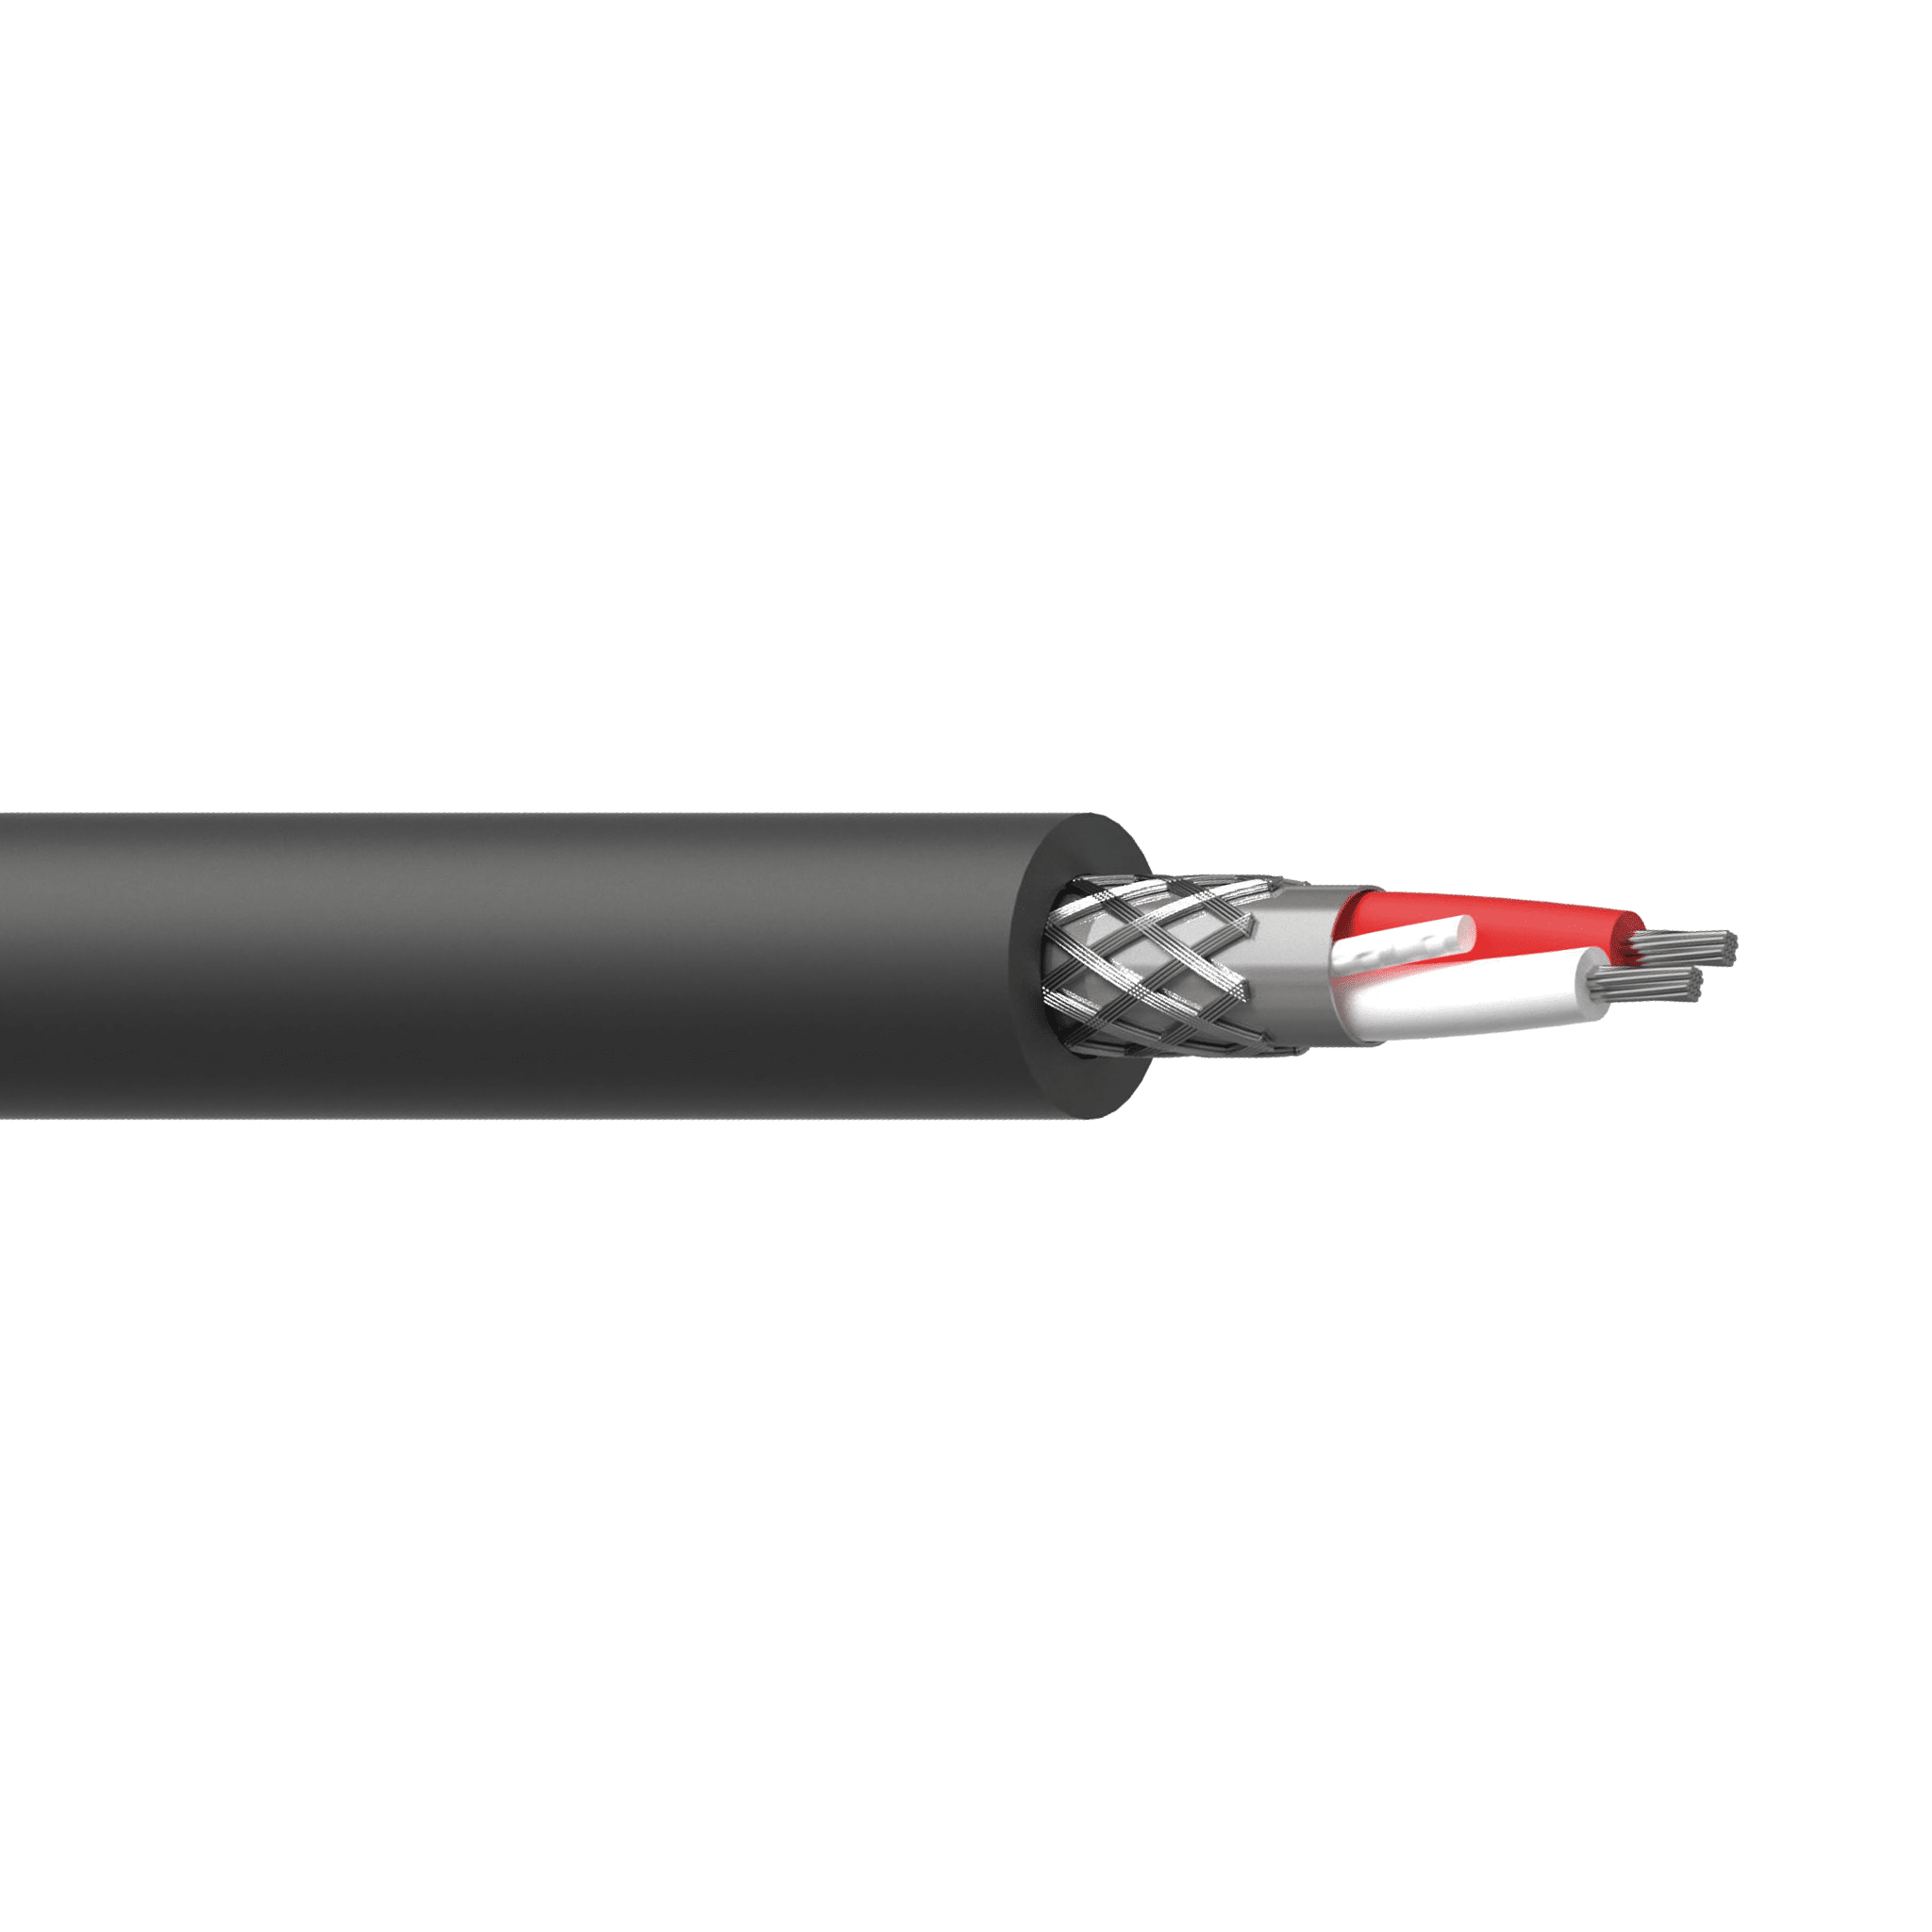 PMX222 - DMX-AES cable - flex 2 x 0.34 mm² - 22 AWG - HighFlex™